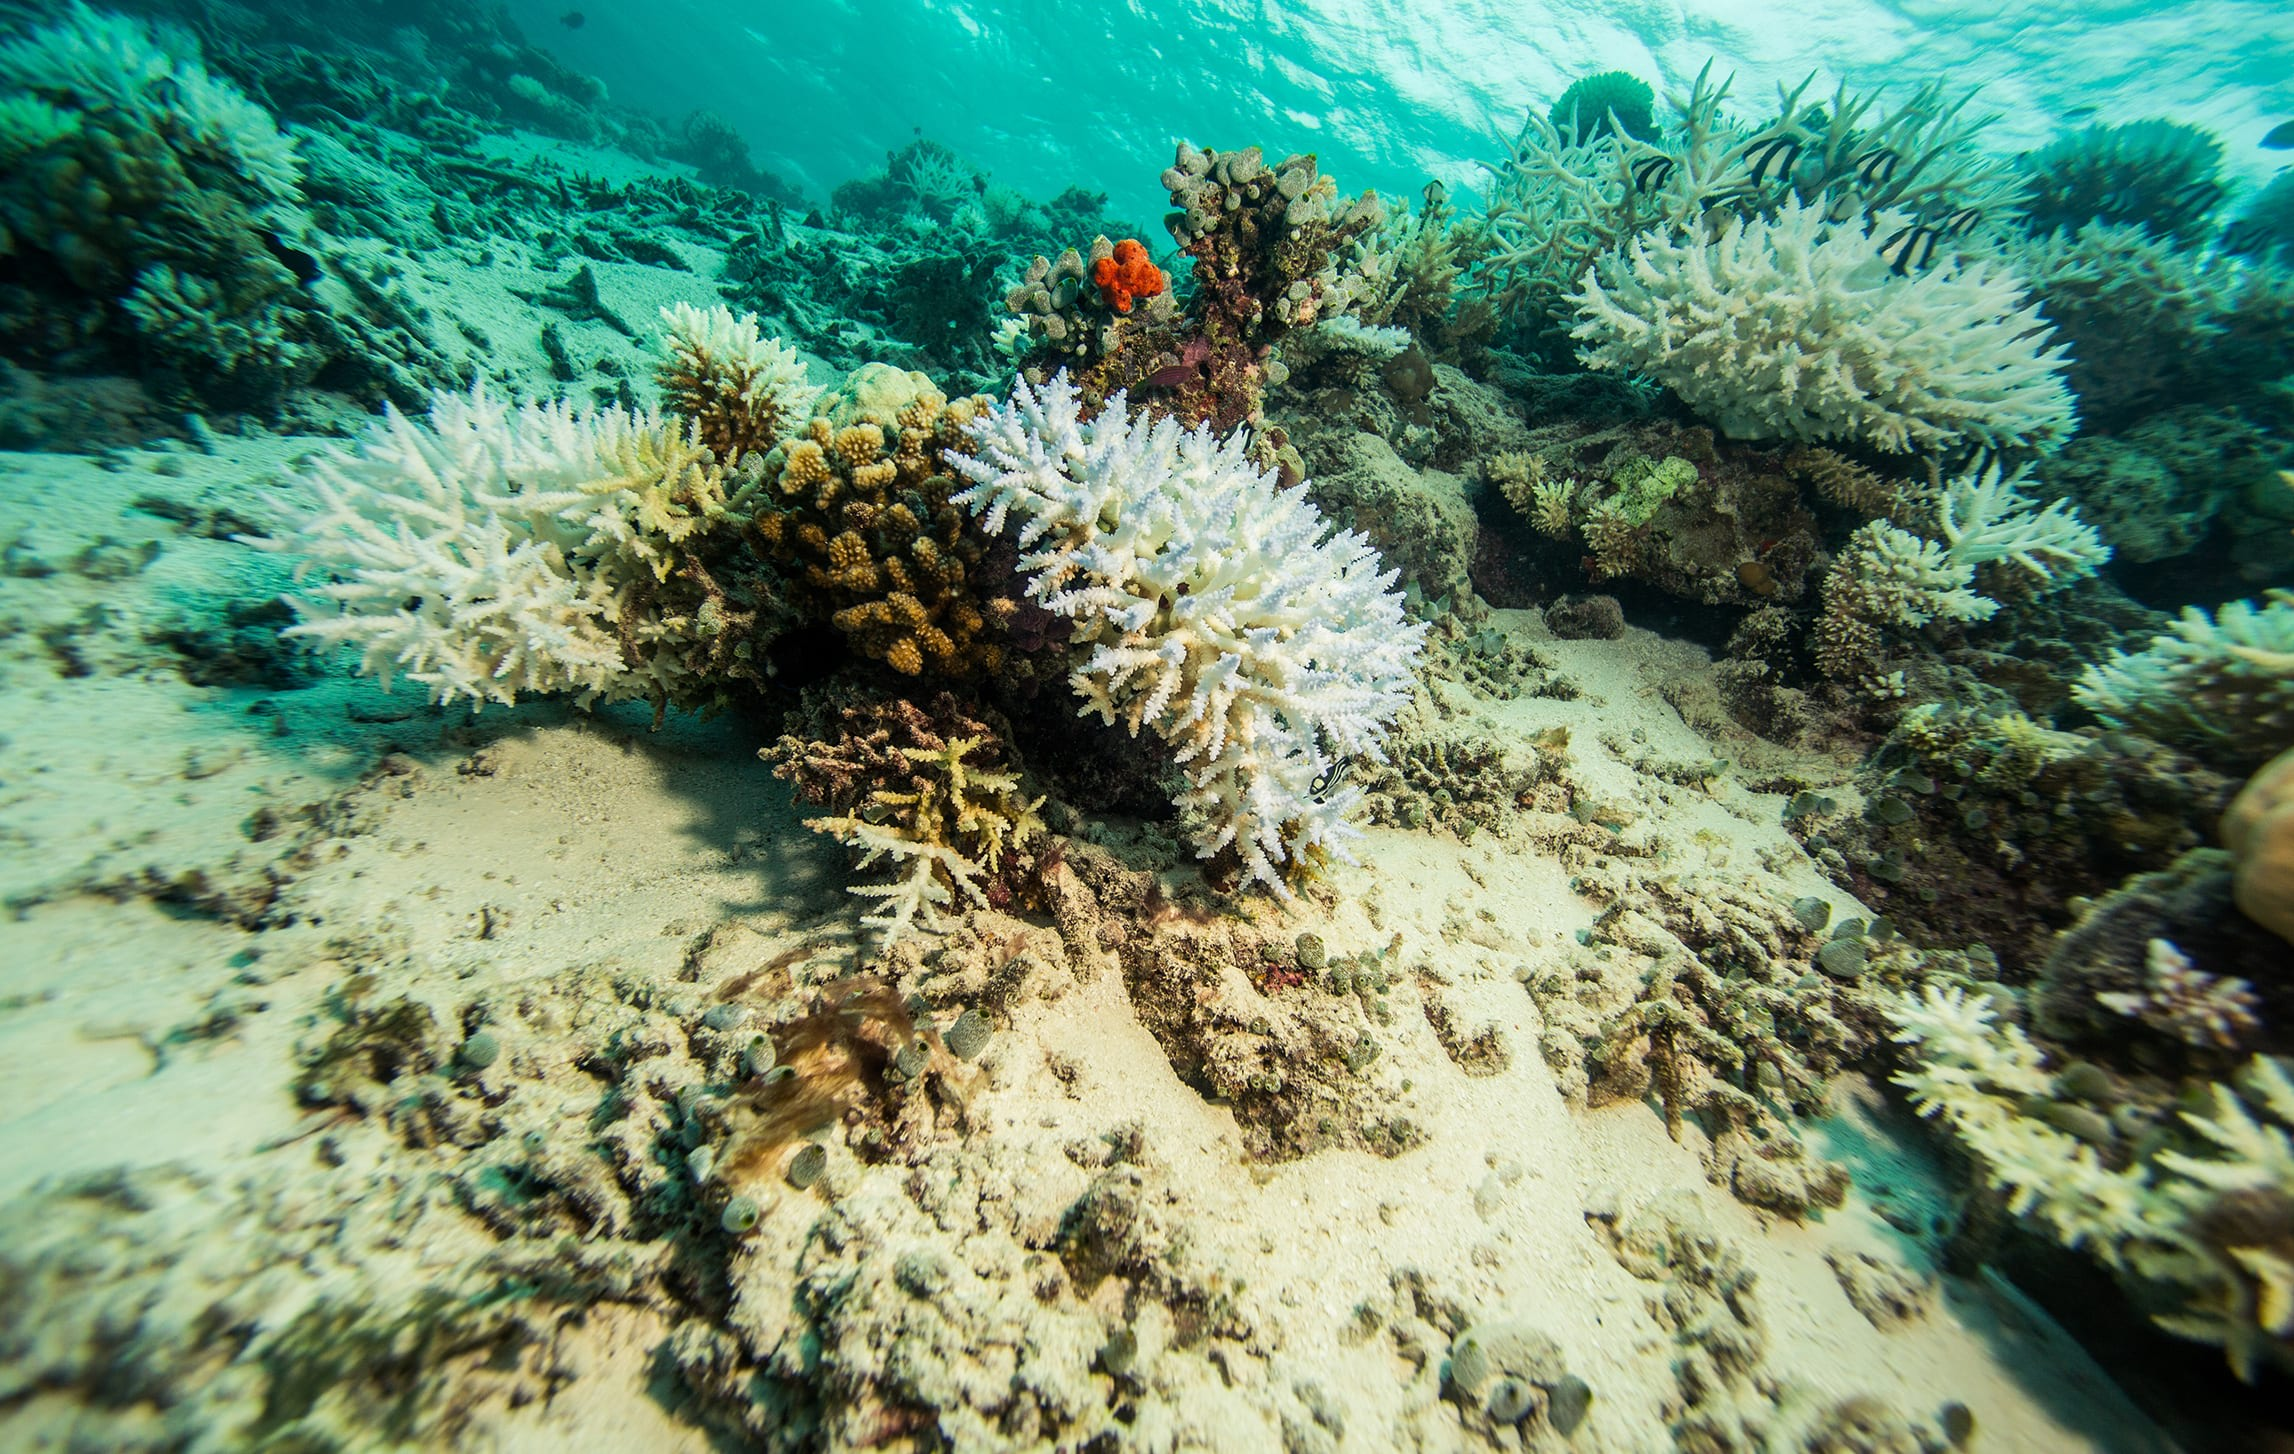 Numerous factors are threatening coral reefs around the world, from over-collection of sand and overfishing, to pollution and the exploitation of coral for wildlife trade. However, it is the effect of warming sea temperatures as a result of climate change that most threatens coral survival.